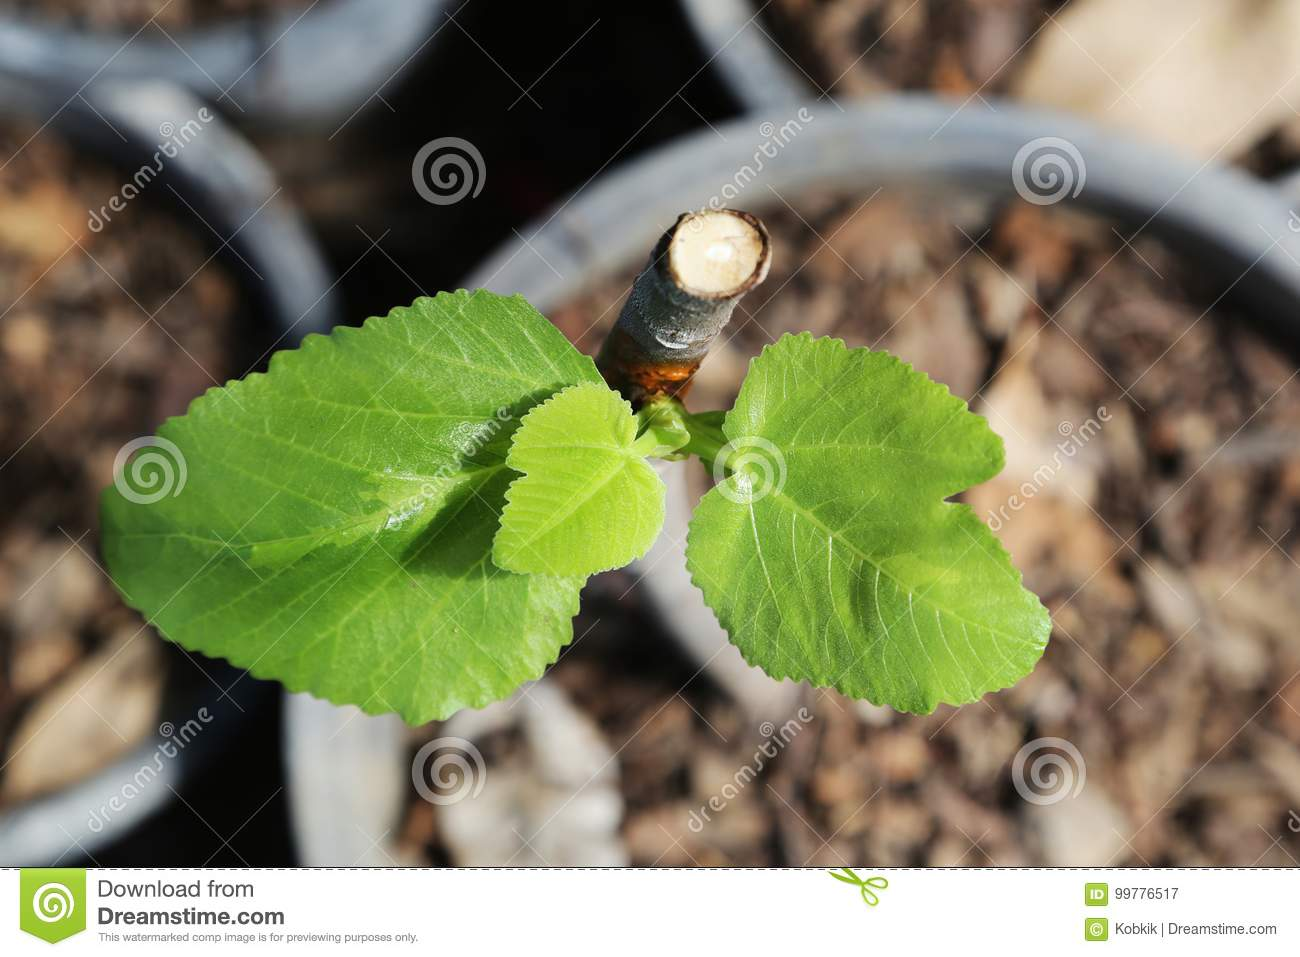 New life of a common fig plant.